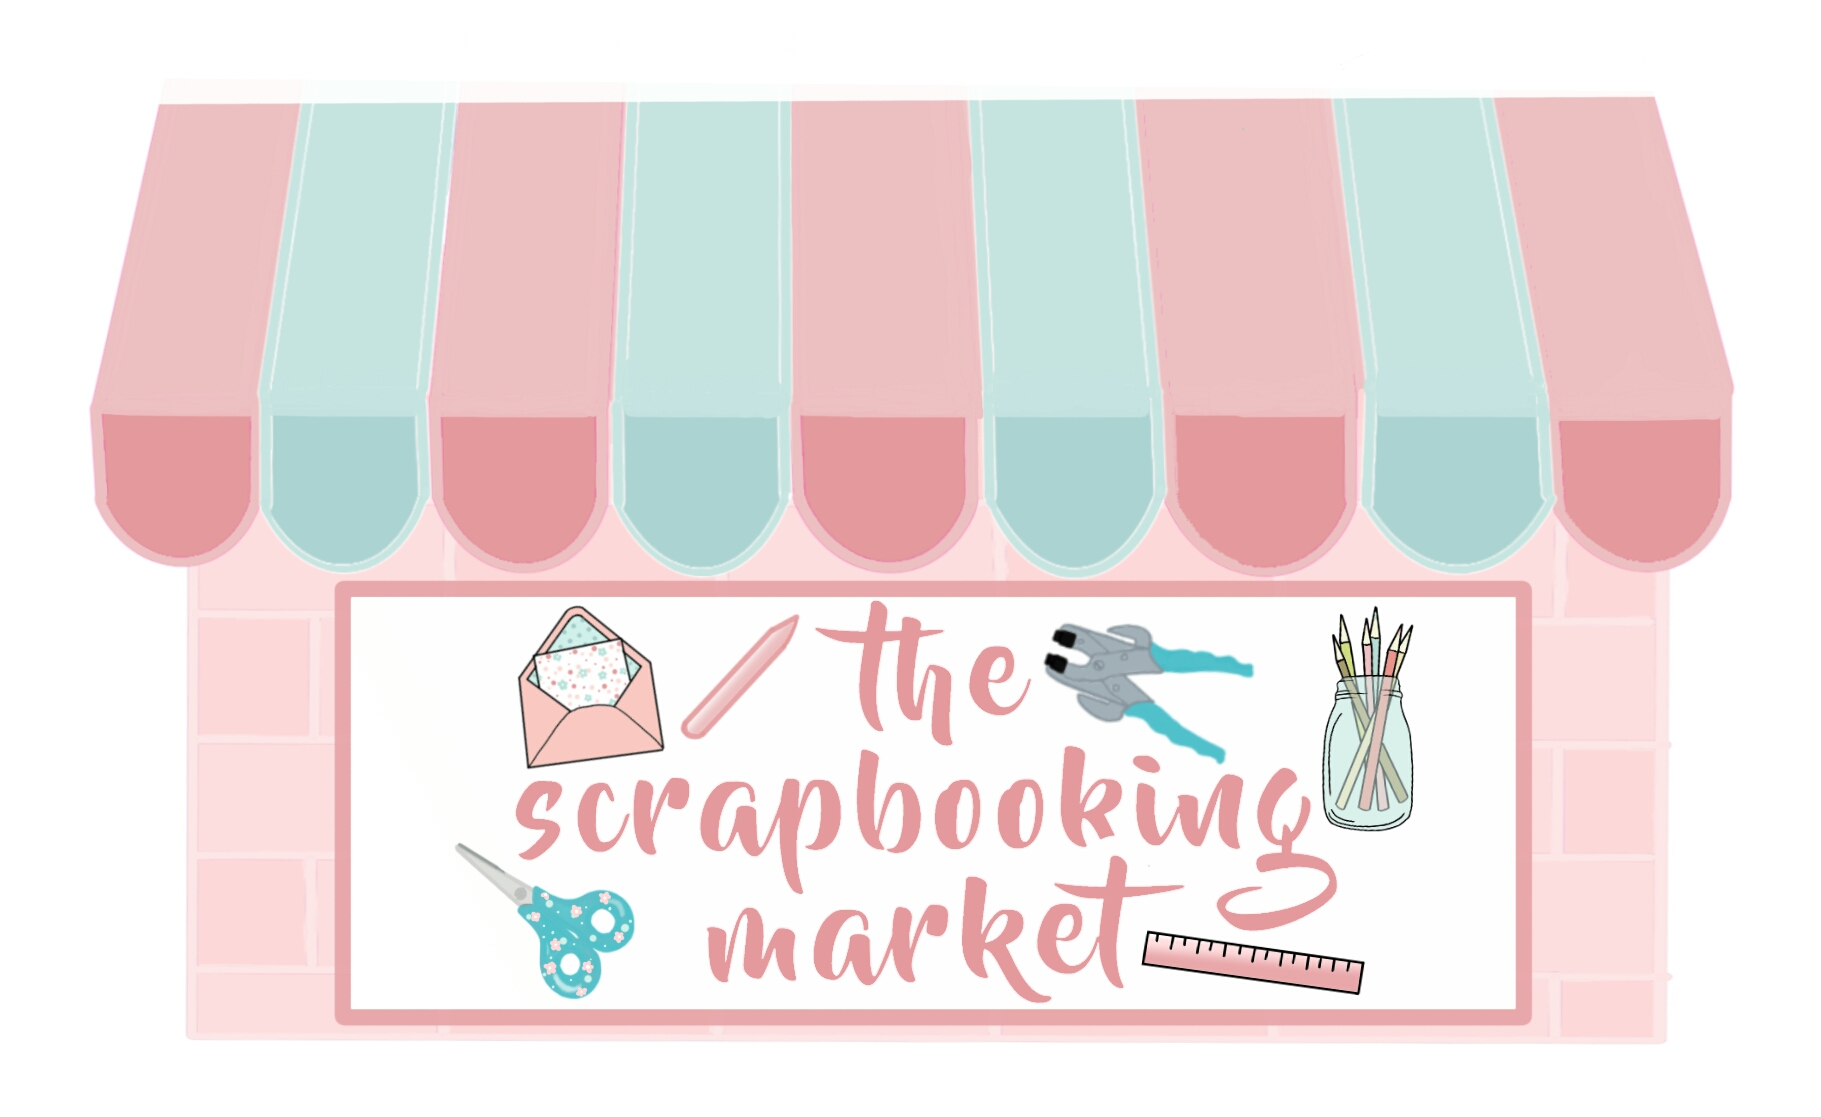 the-scrapbooking-market